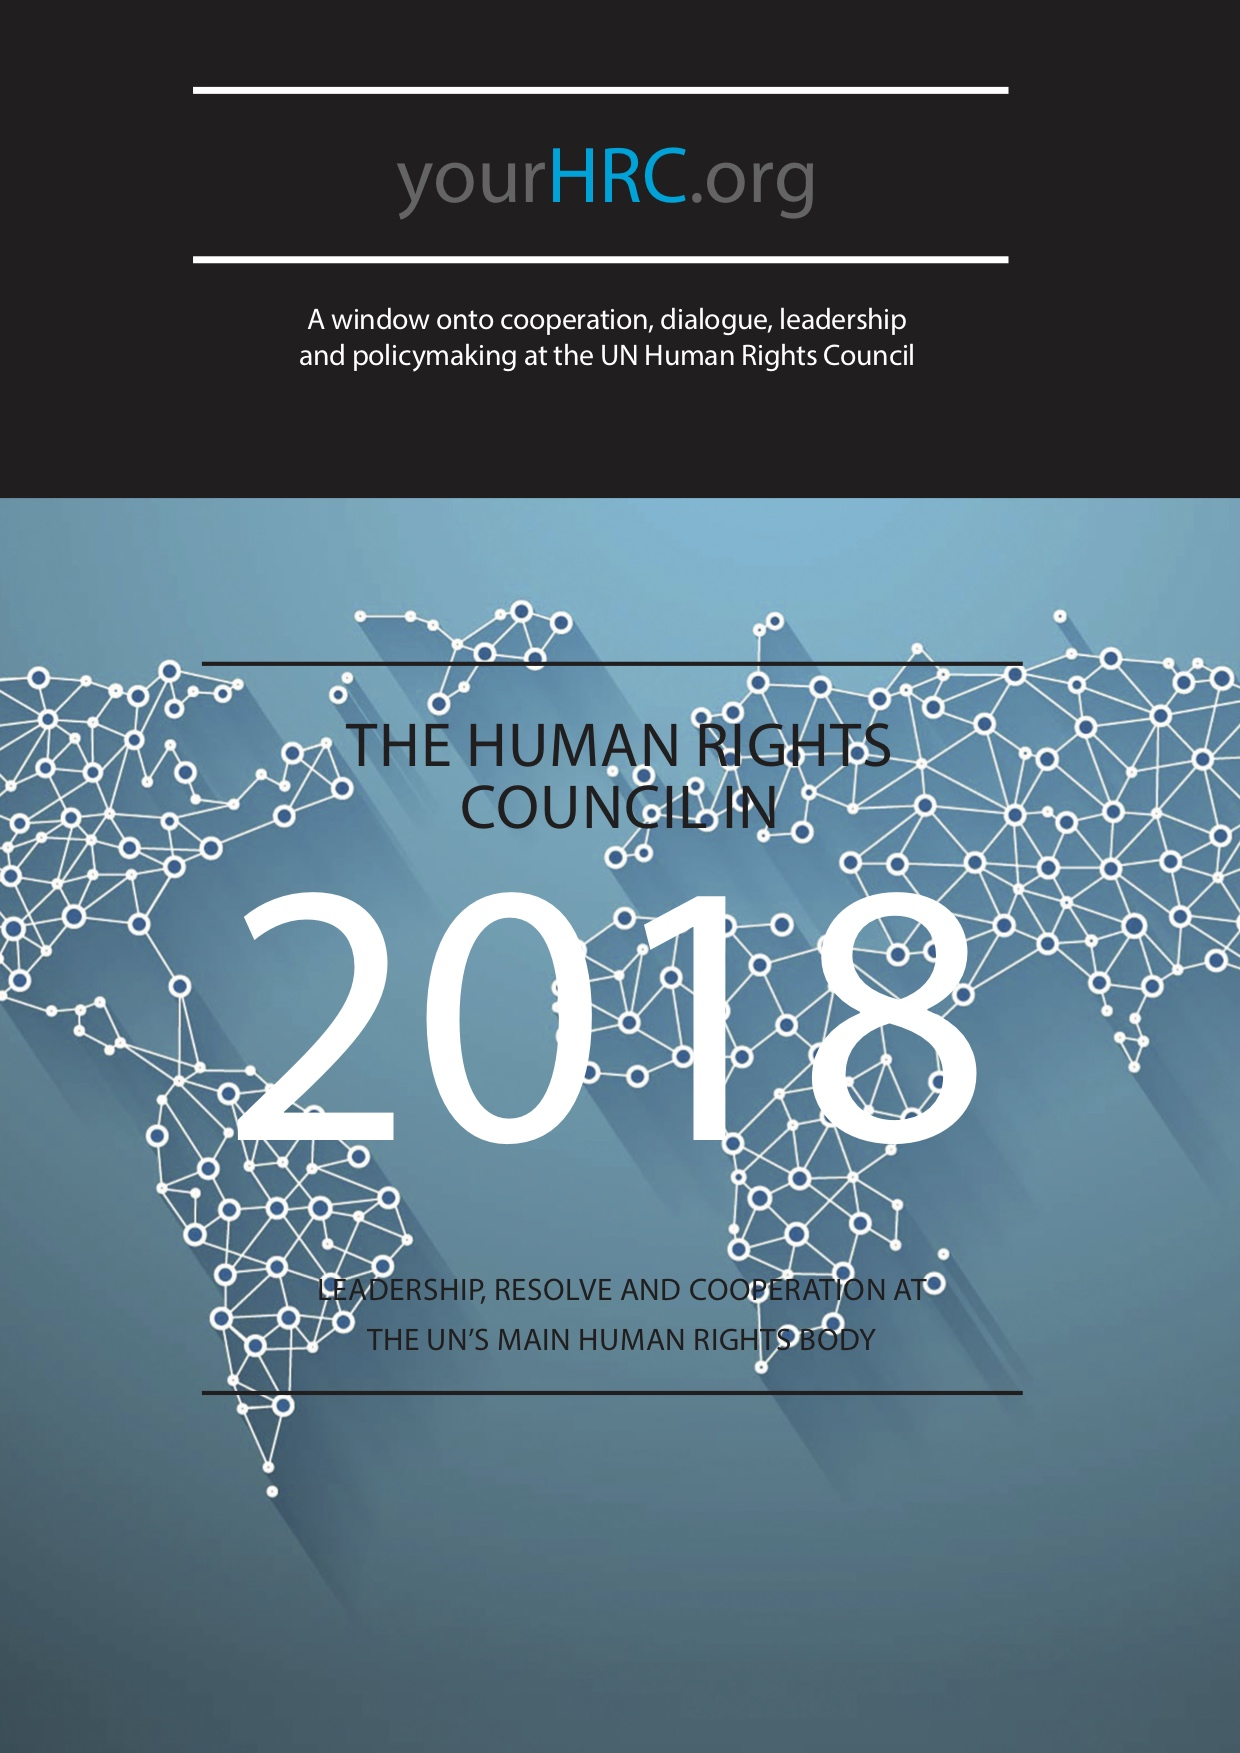 The Human Rights Council in 2018